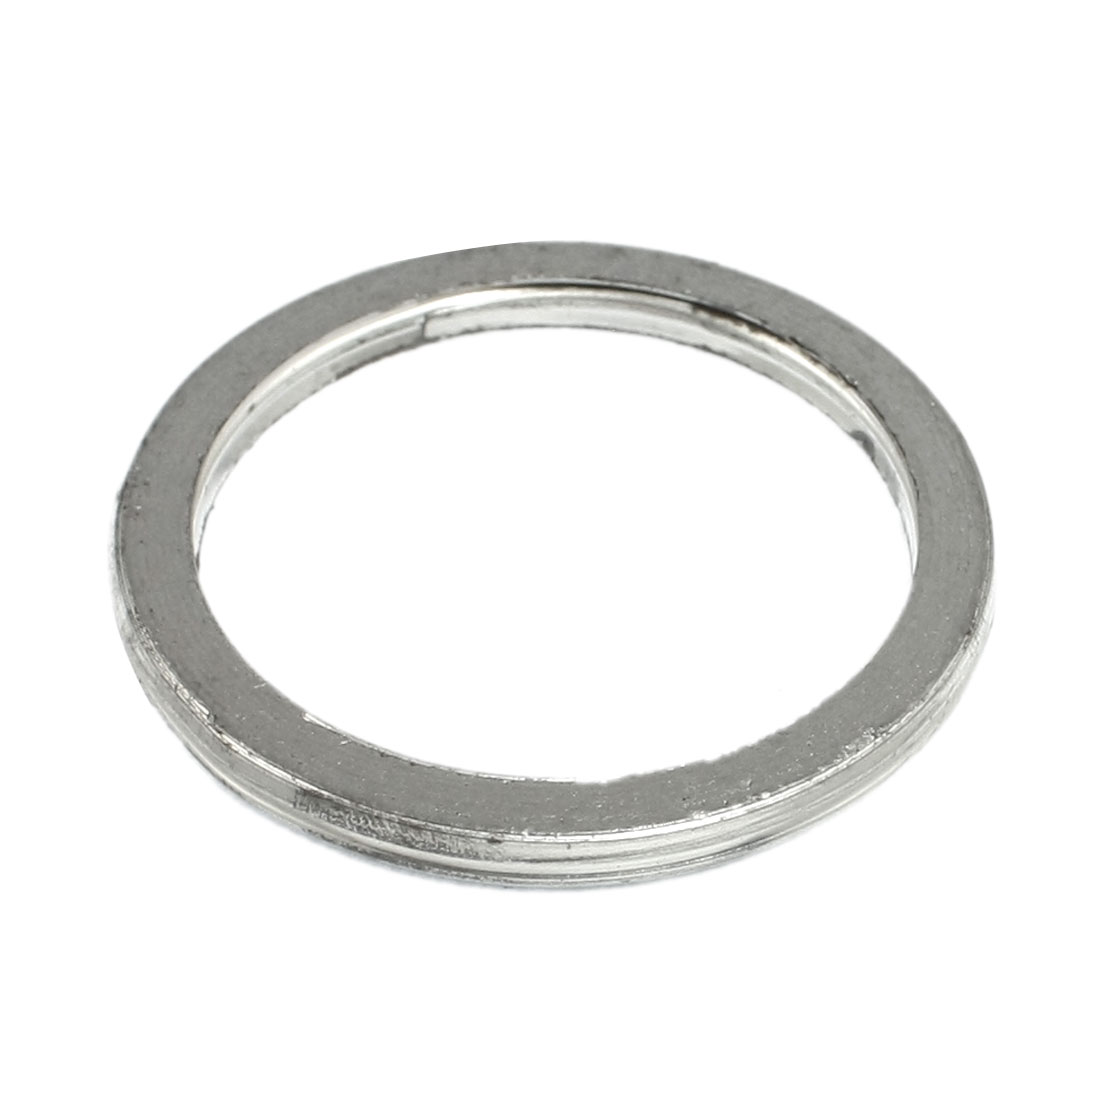 "Auto Car Universal Gray Metal 1.9"" Speaker Spacer Ring"